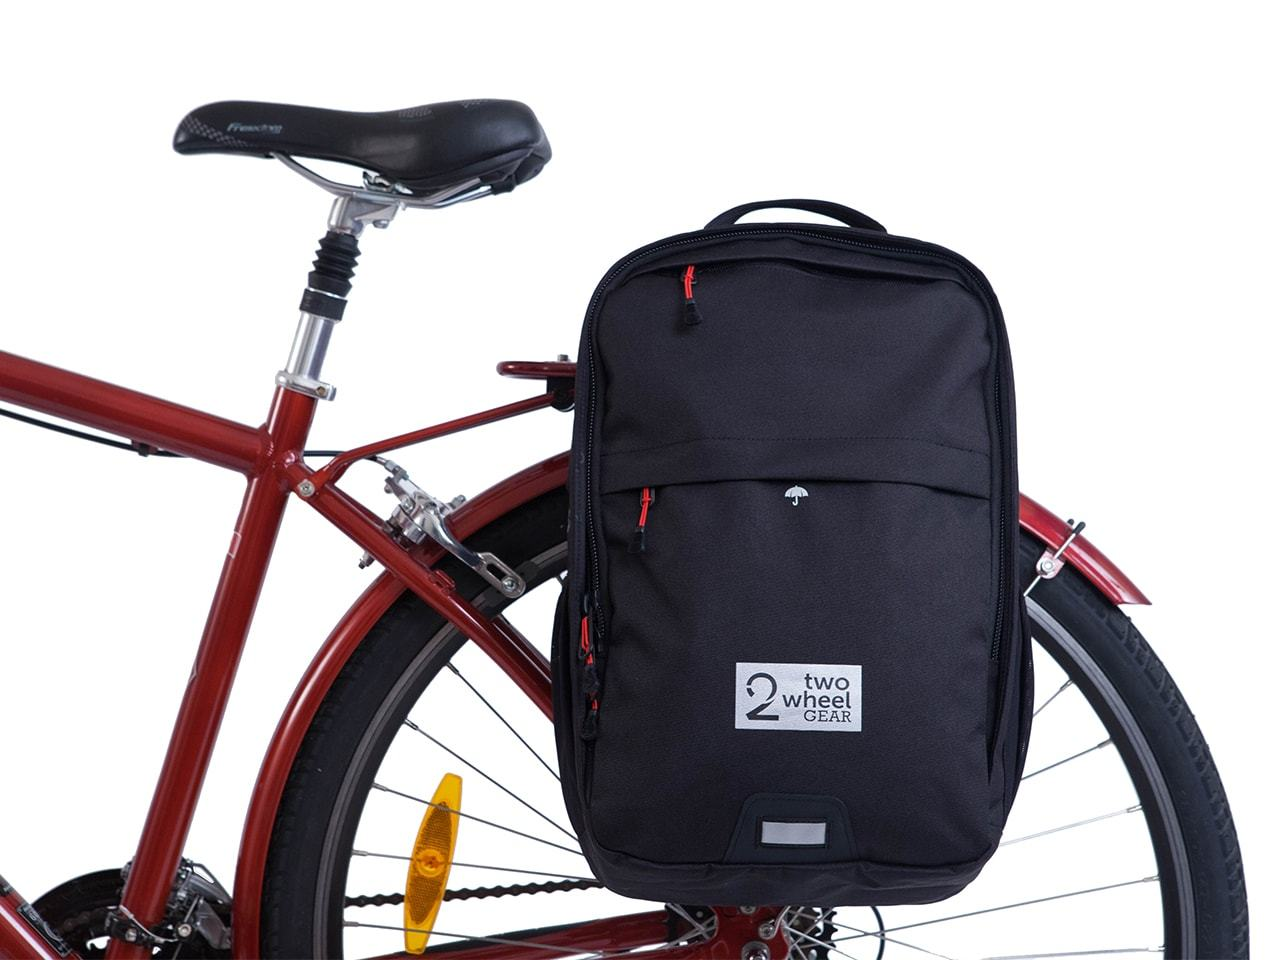 Pannier Backpack Convertible - Black - Bags - Two Wheel Gear - On Bike - Main